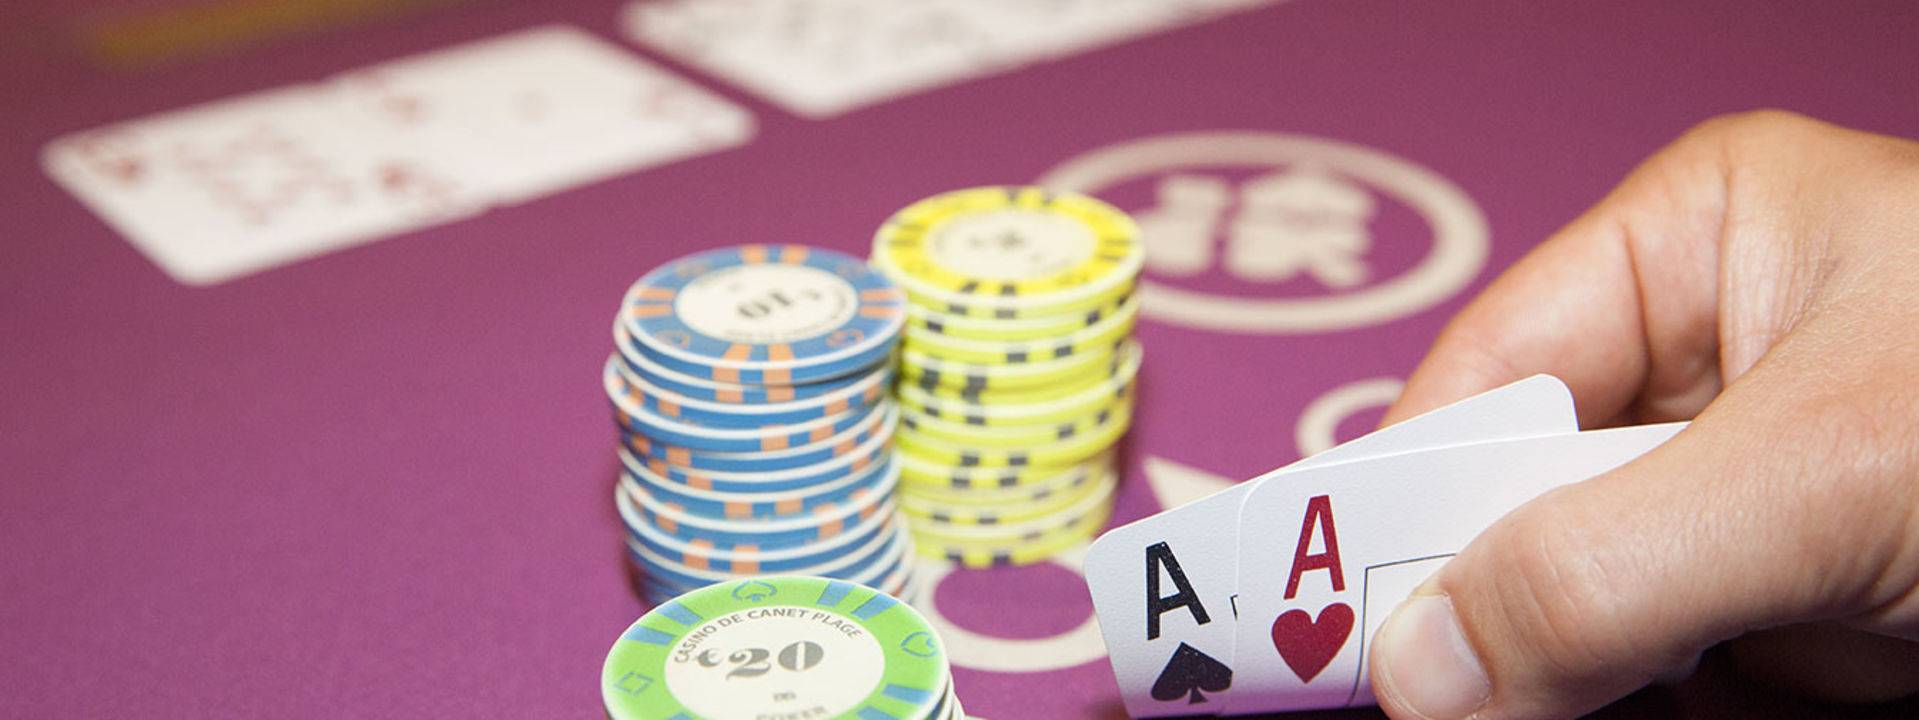 Casino luxeuil poker hot poker games